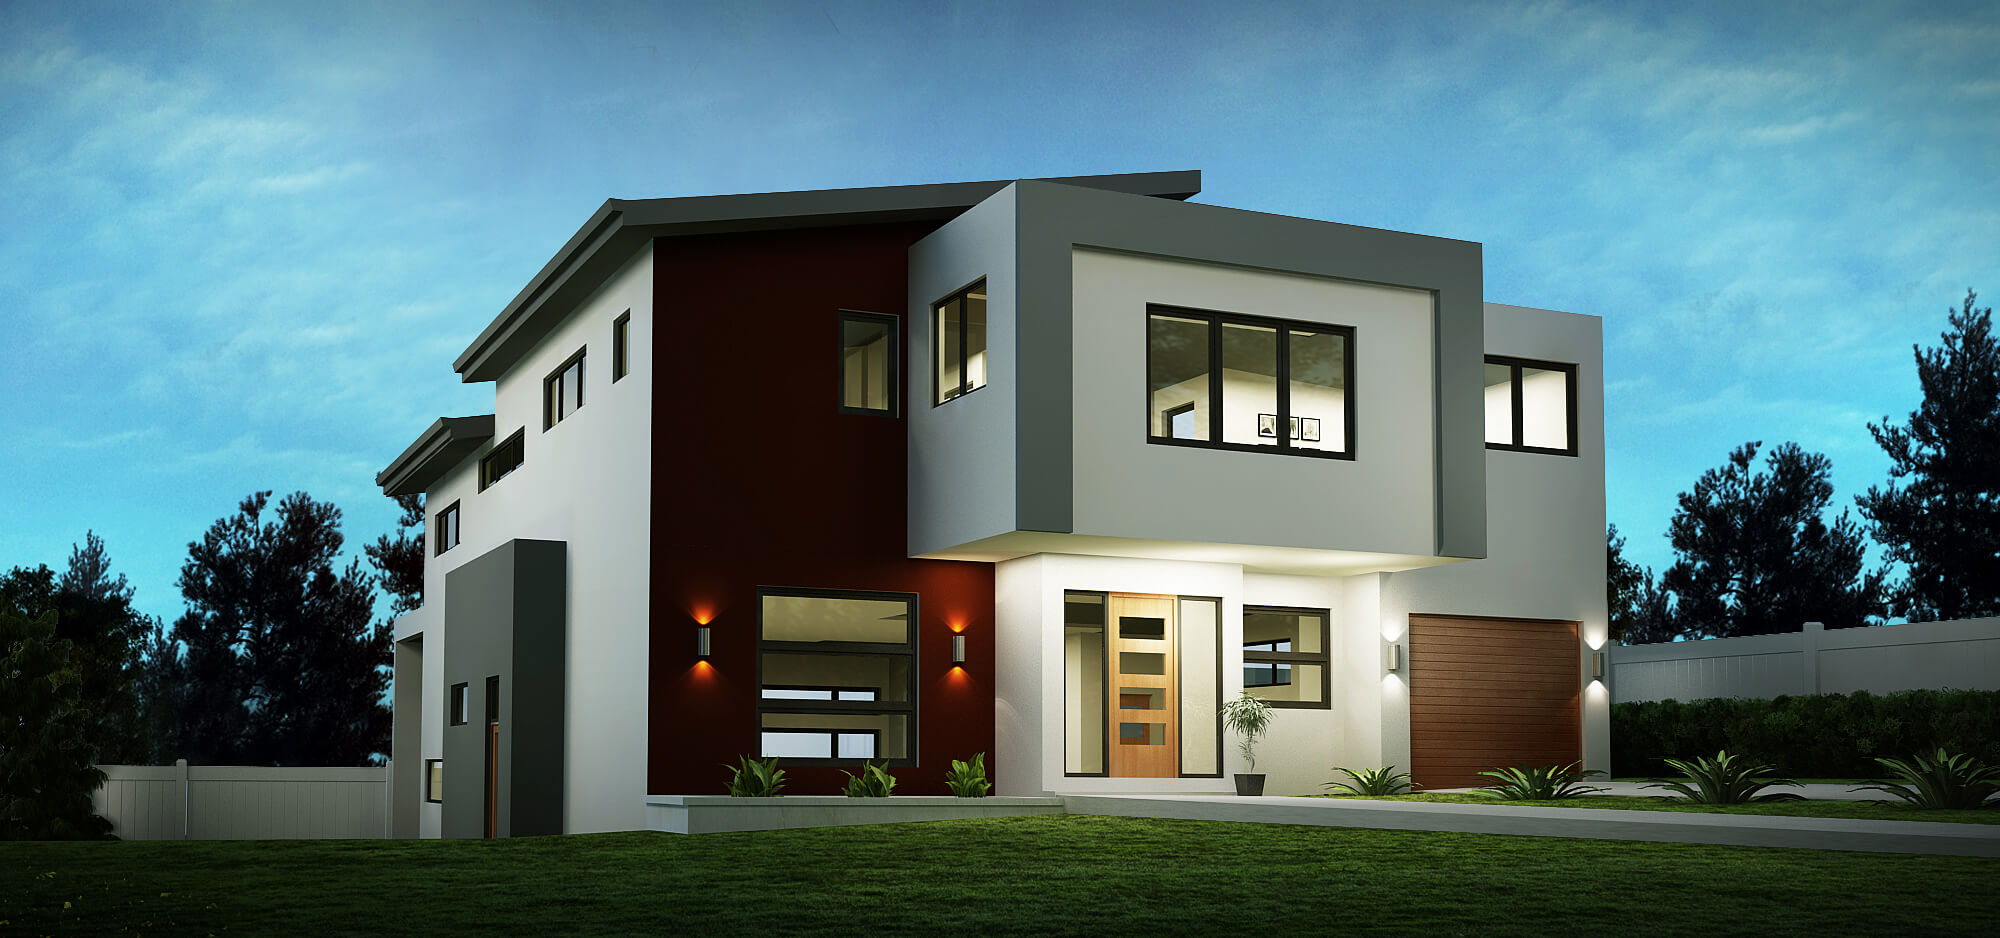 Sloping house block designs custom home designs for Custom house ideas